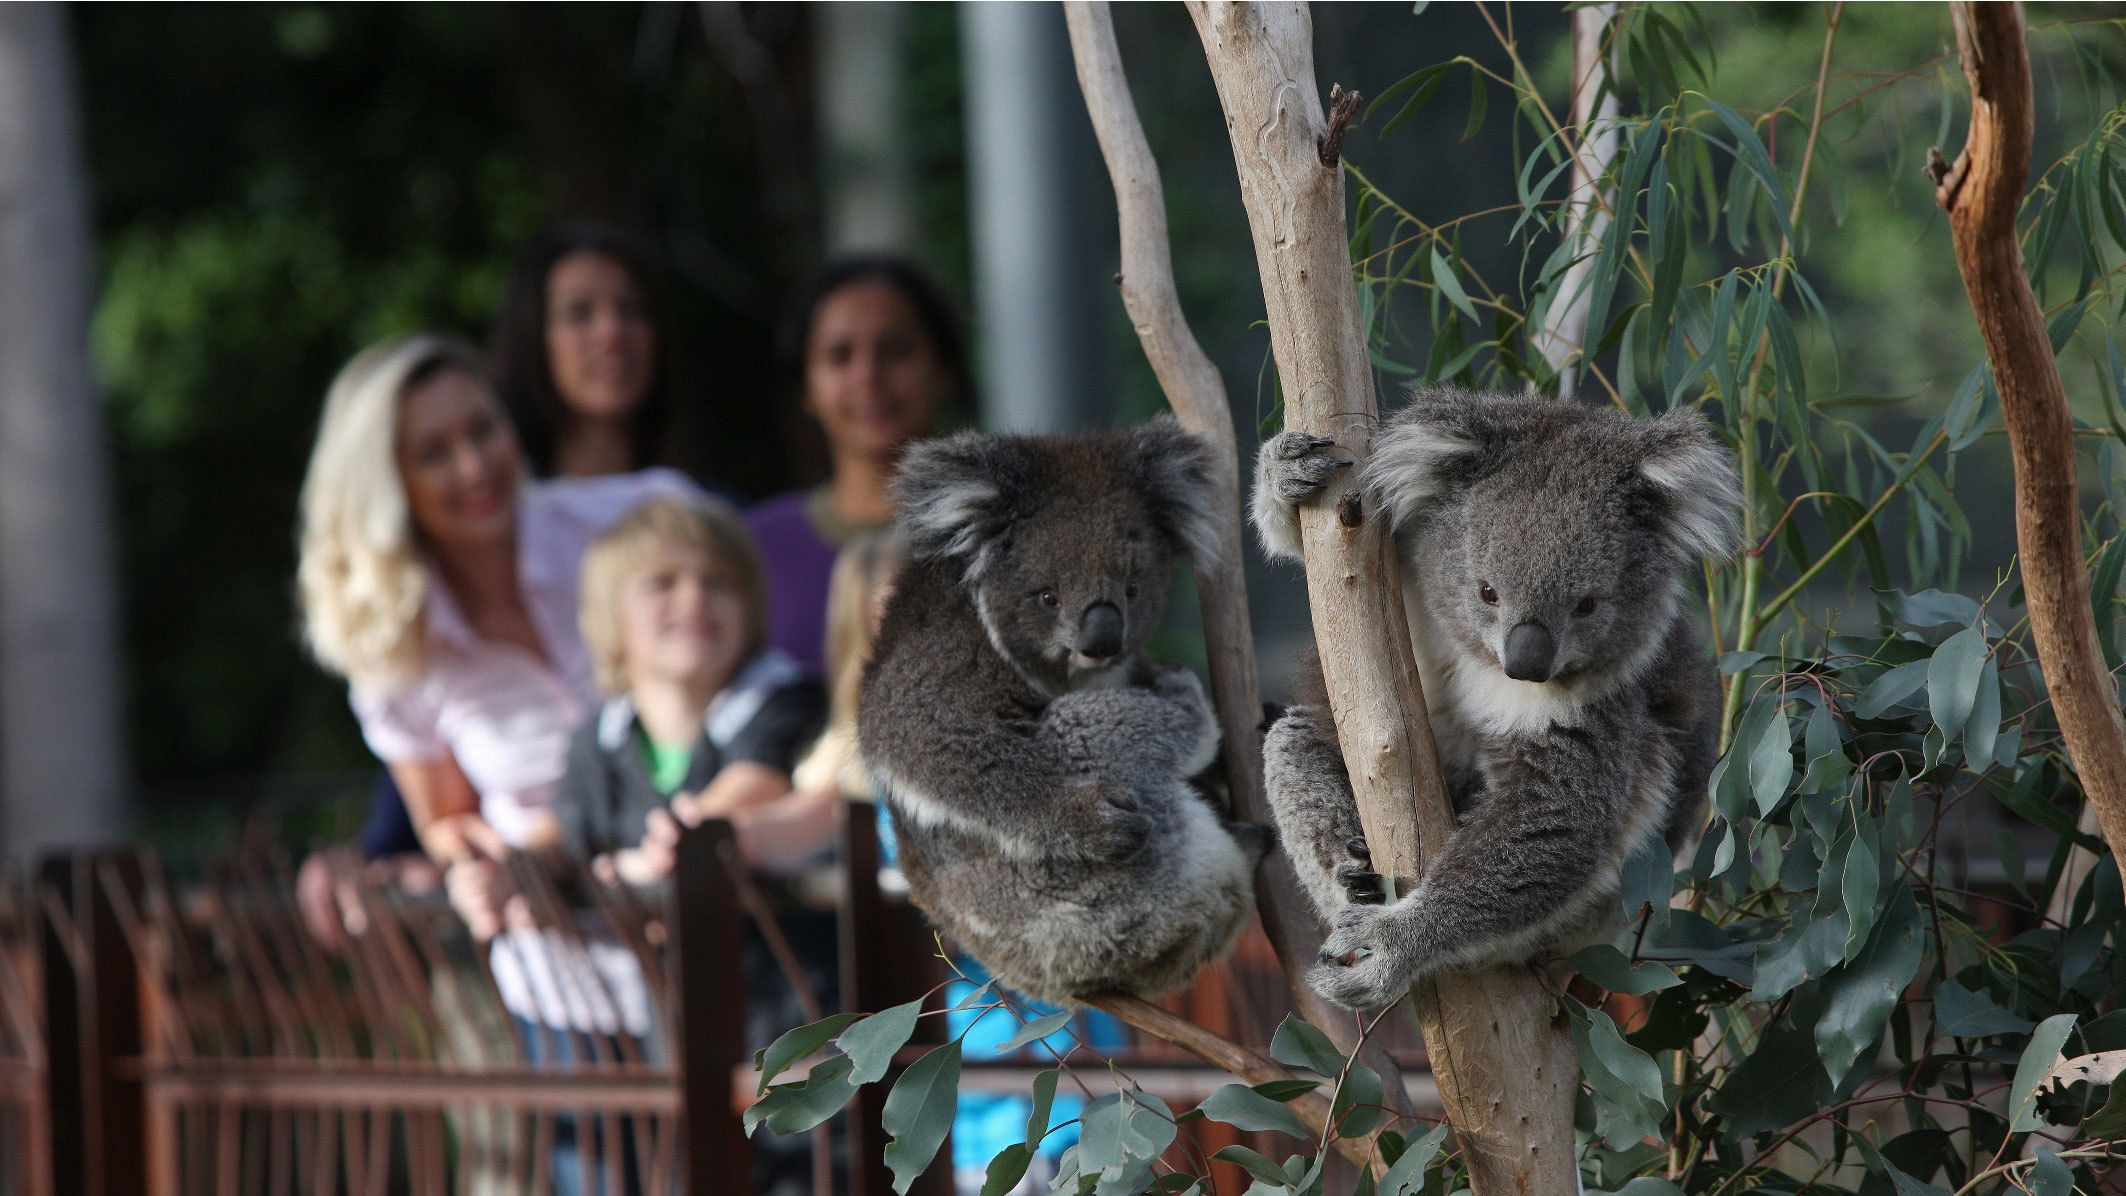 Visitors looking at koalas at the Melbourne Zoo in Australia